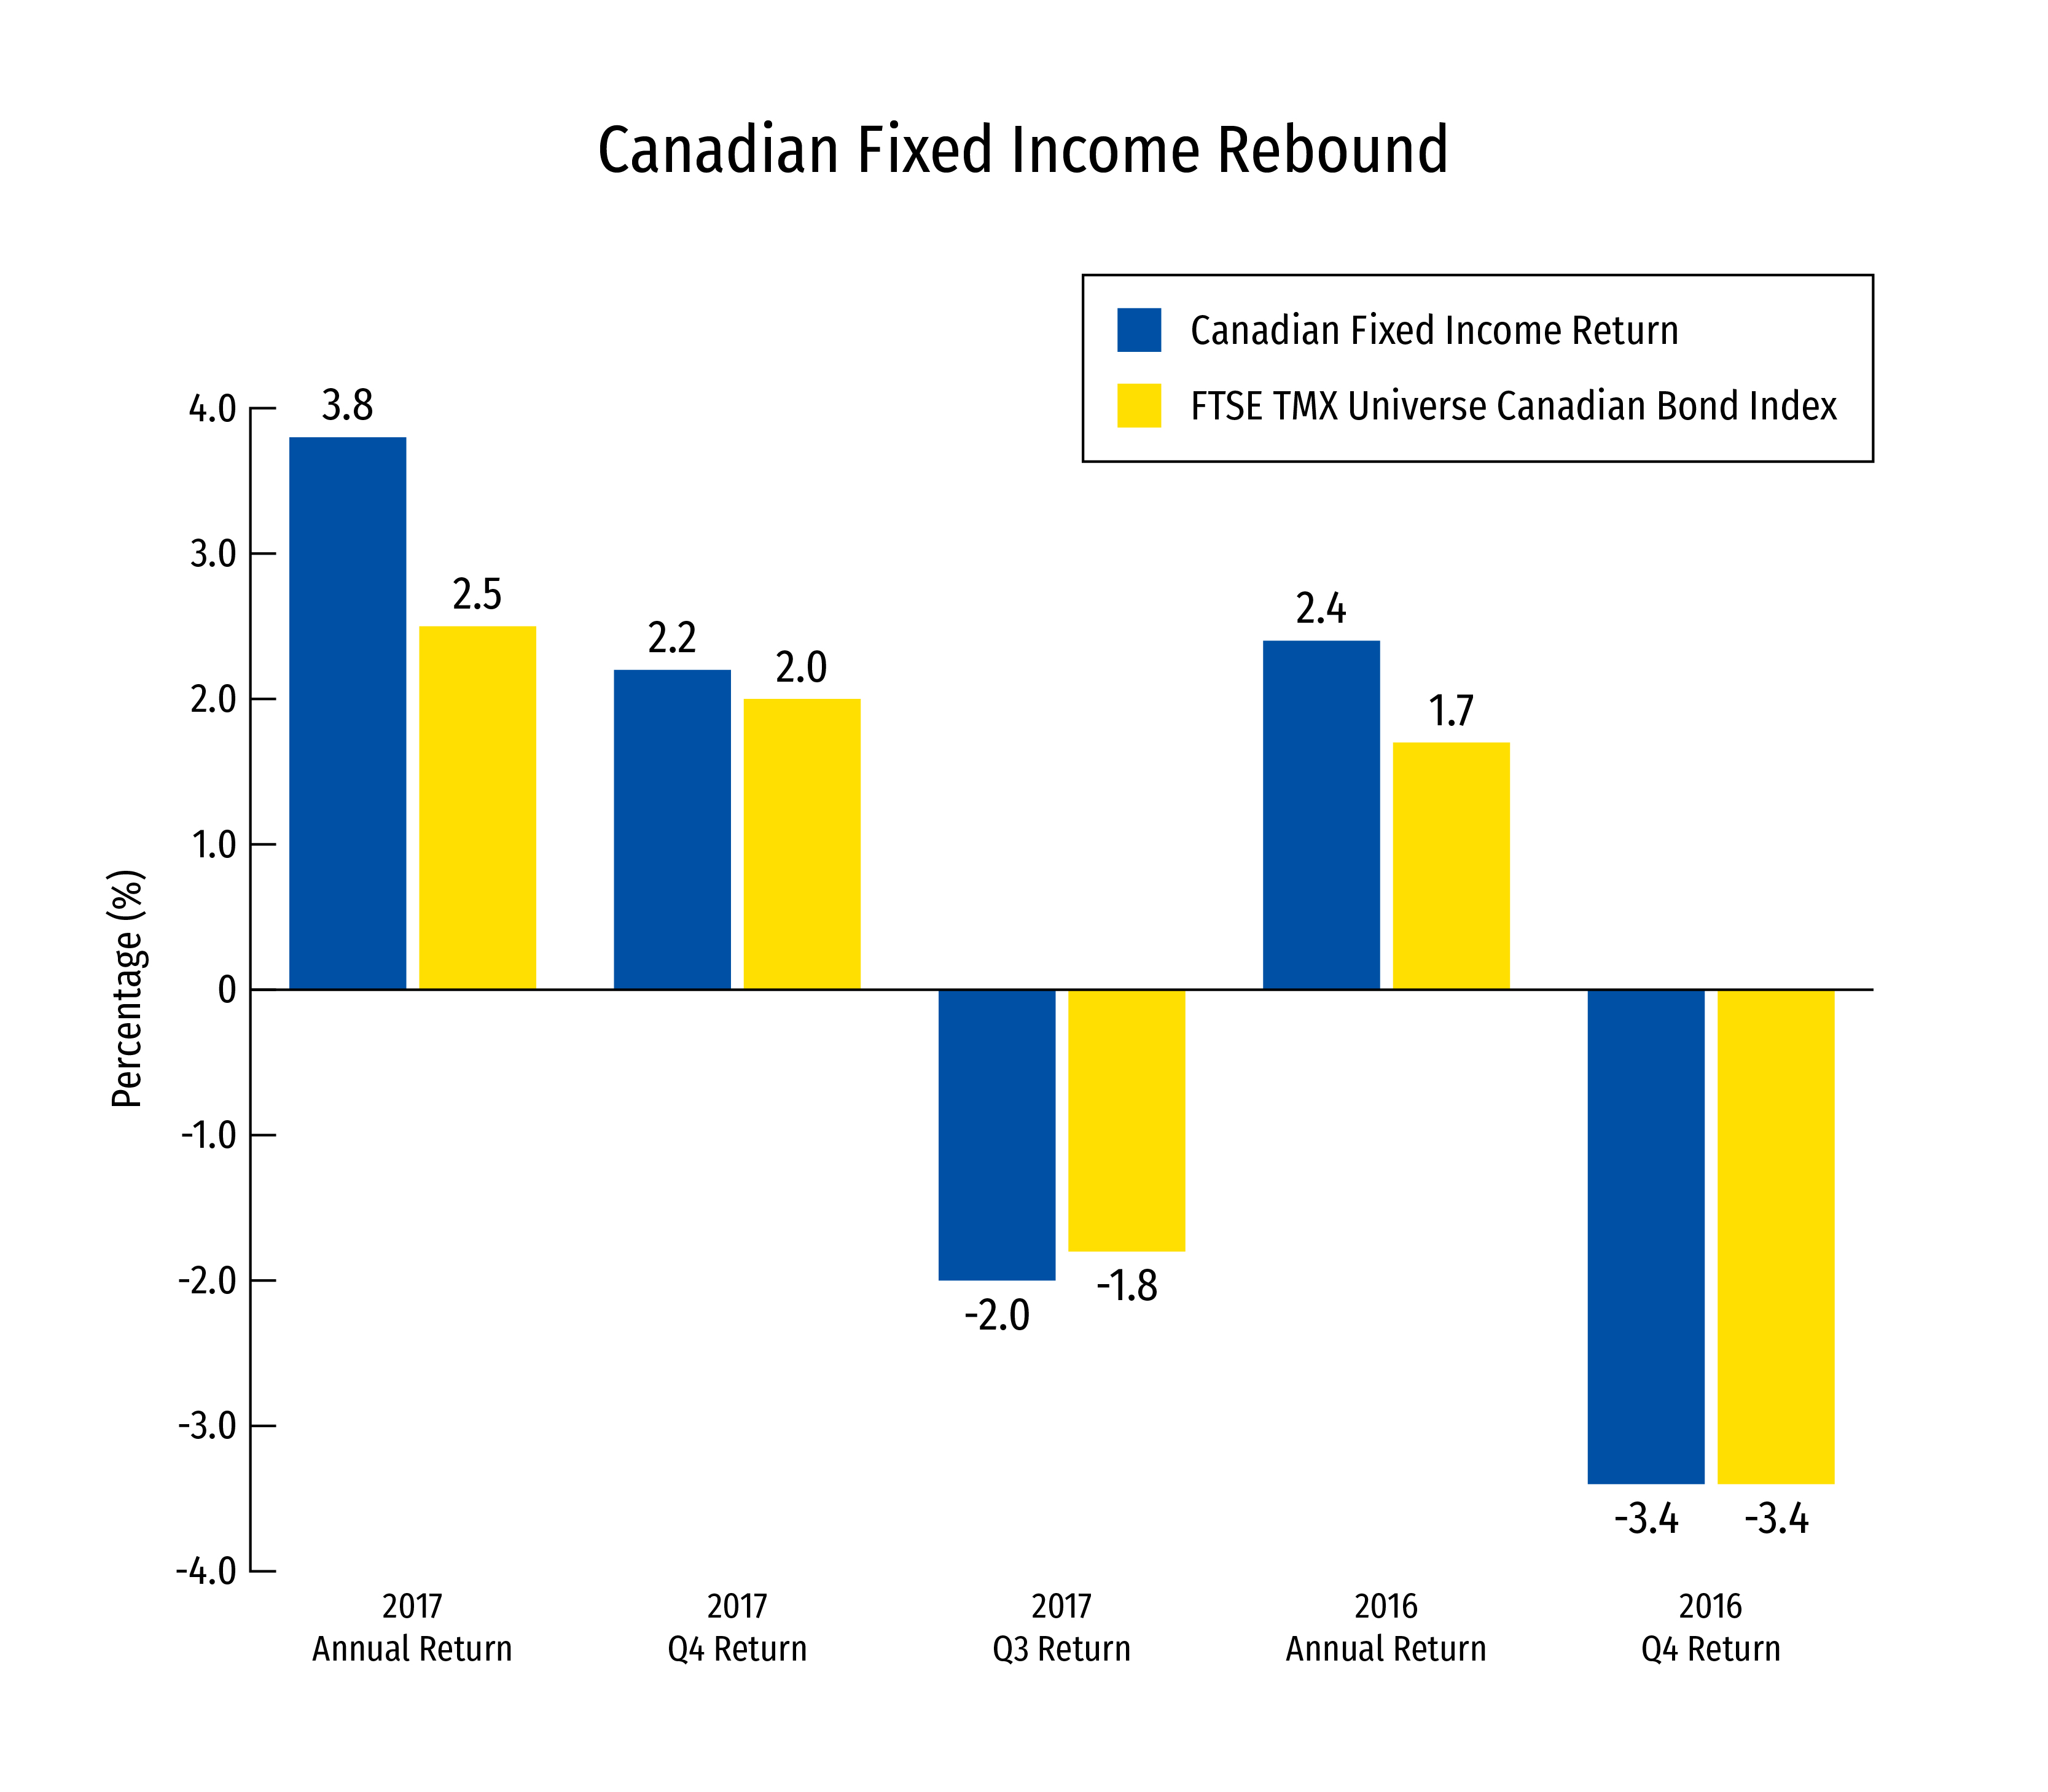 canadian defined benefit pension plans gain further ground in 2017